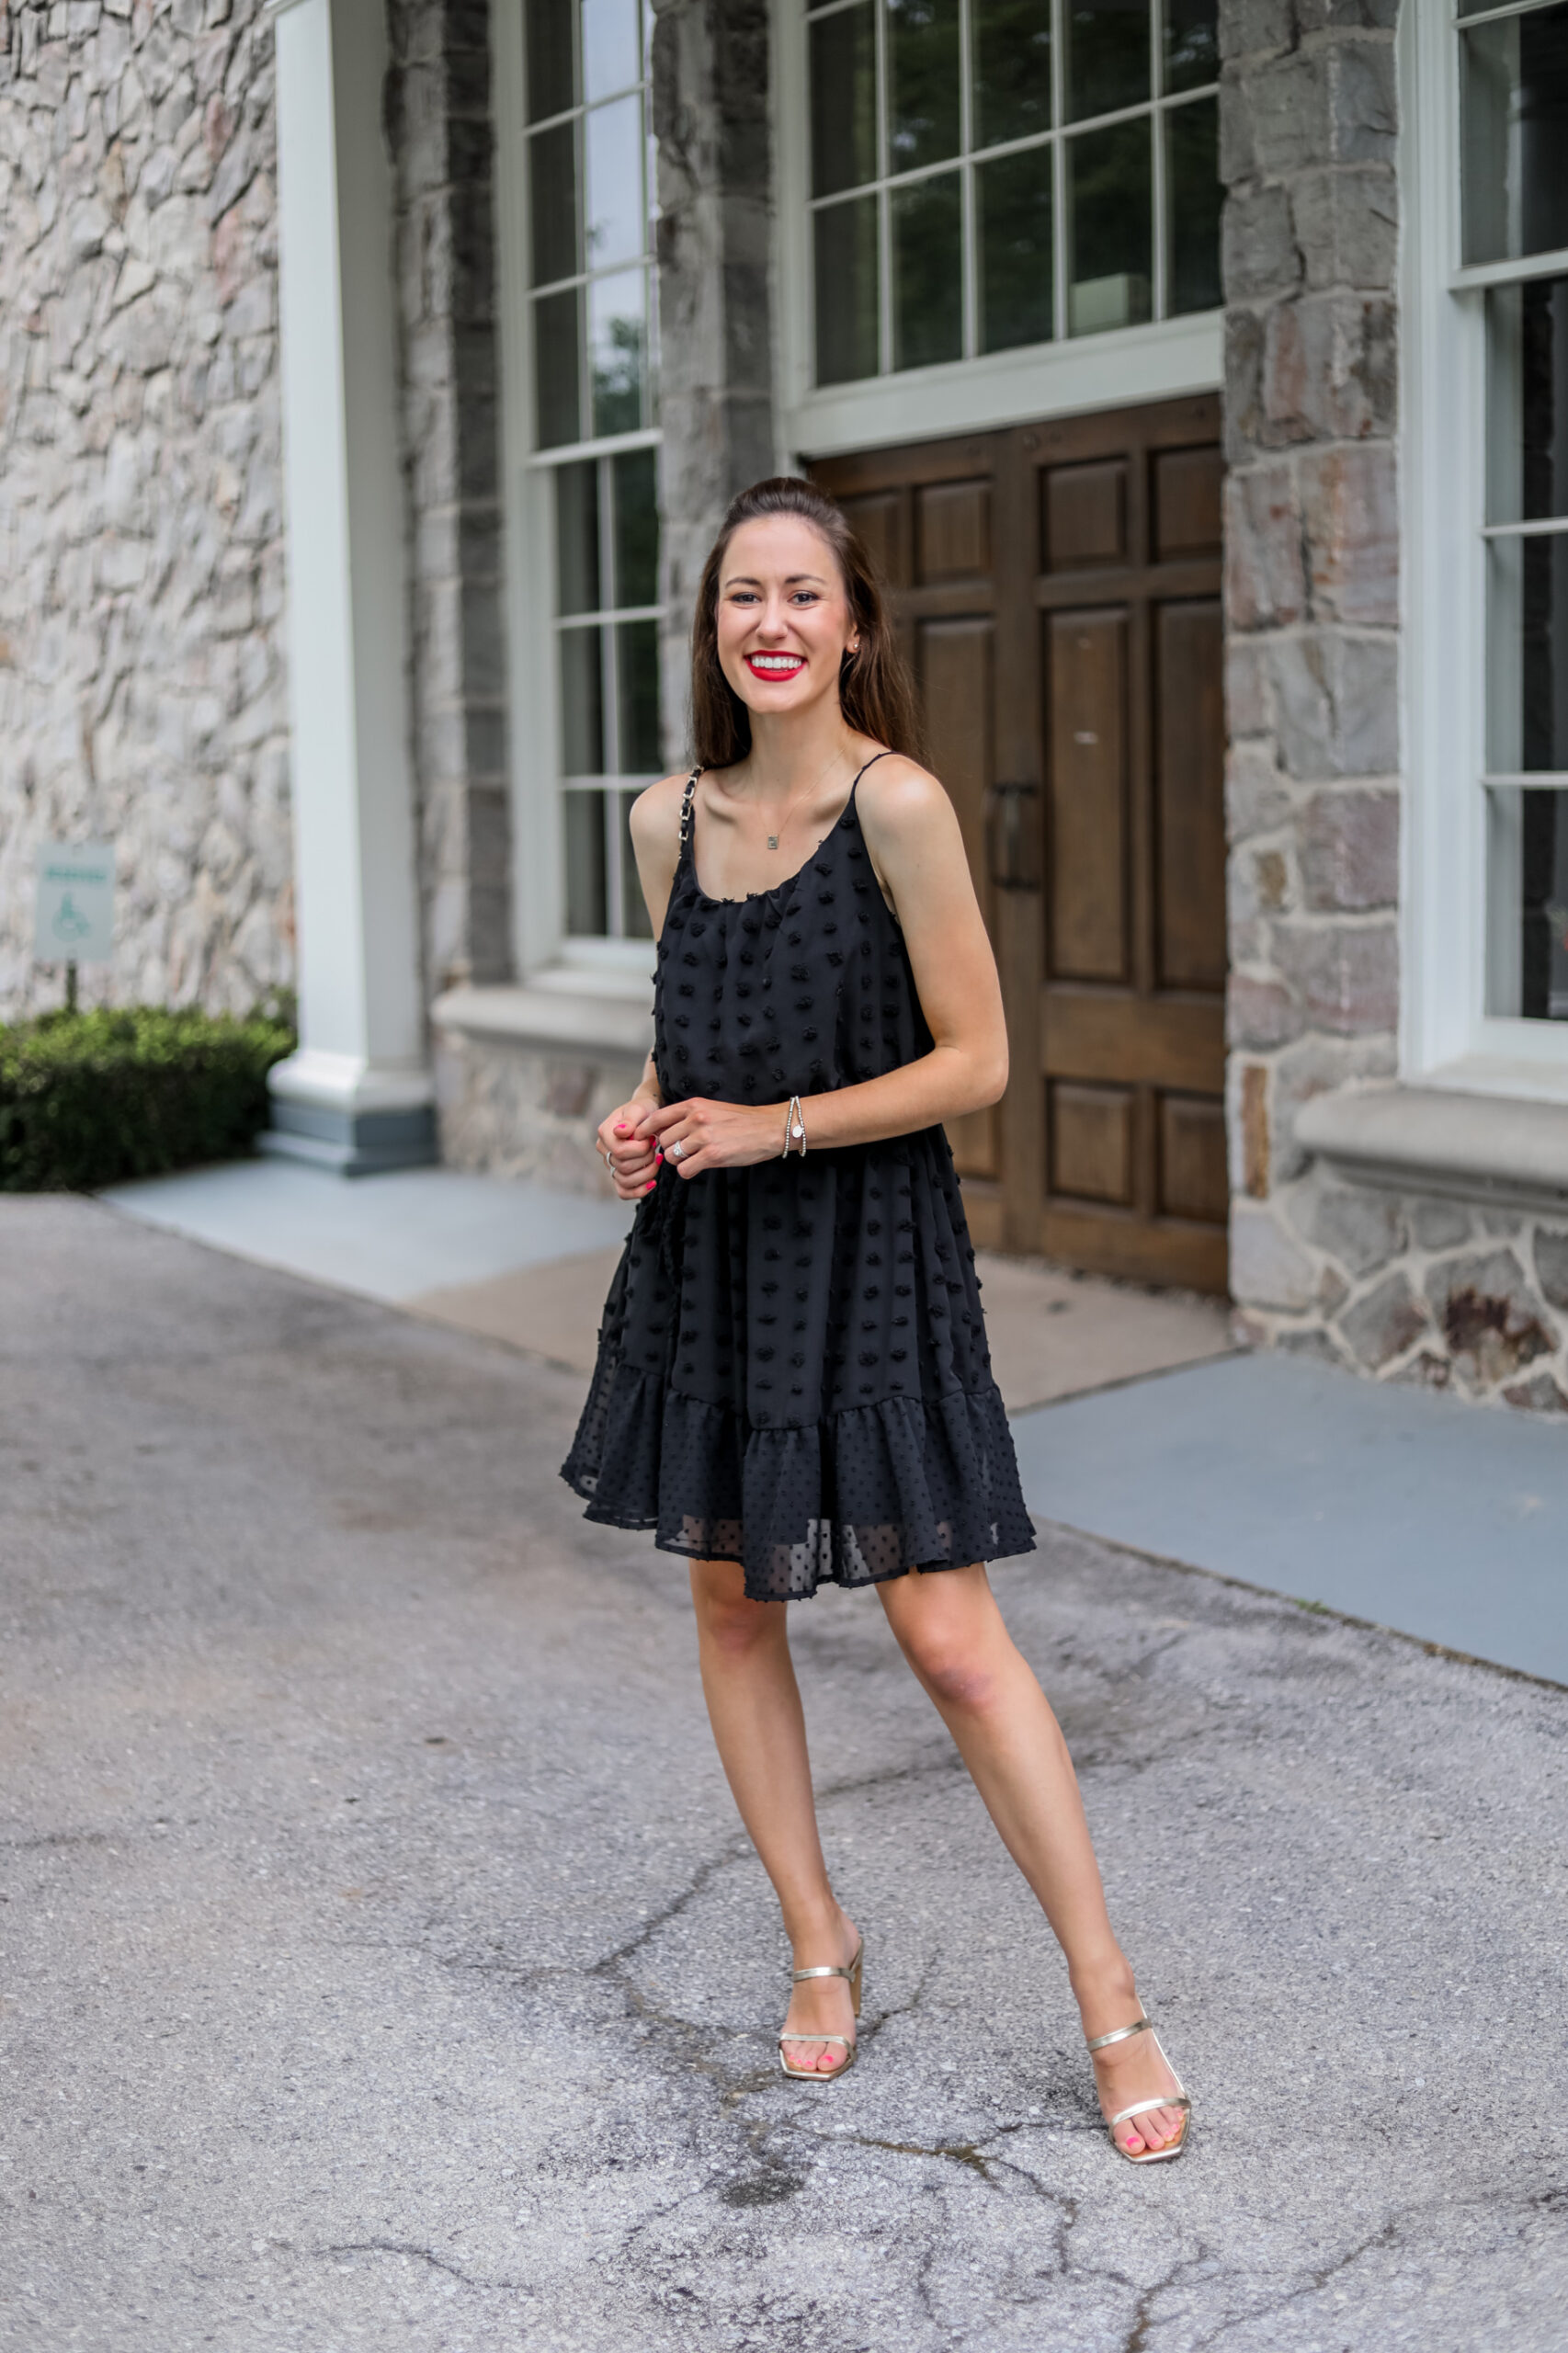 A PERFECT $30 Little Black Dress on Amazon - a must have dress and closet staple!